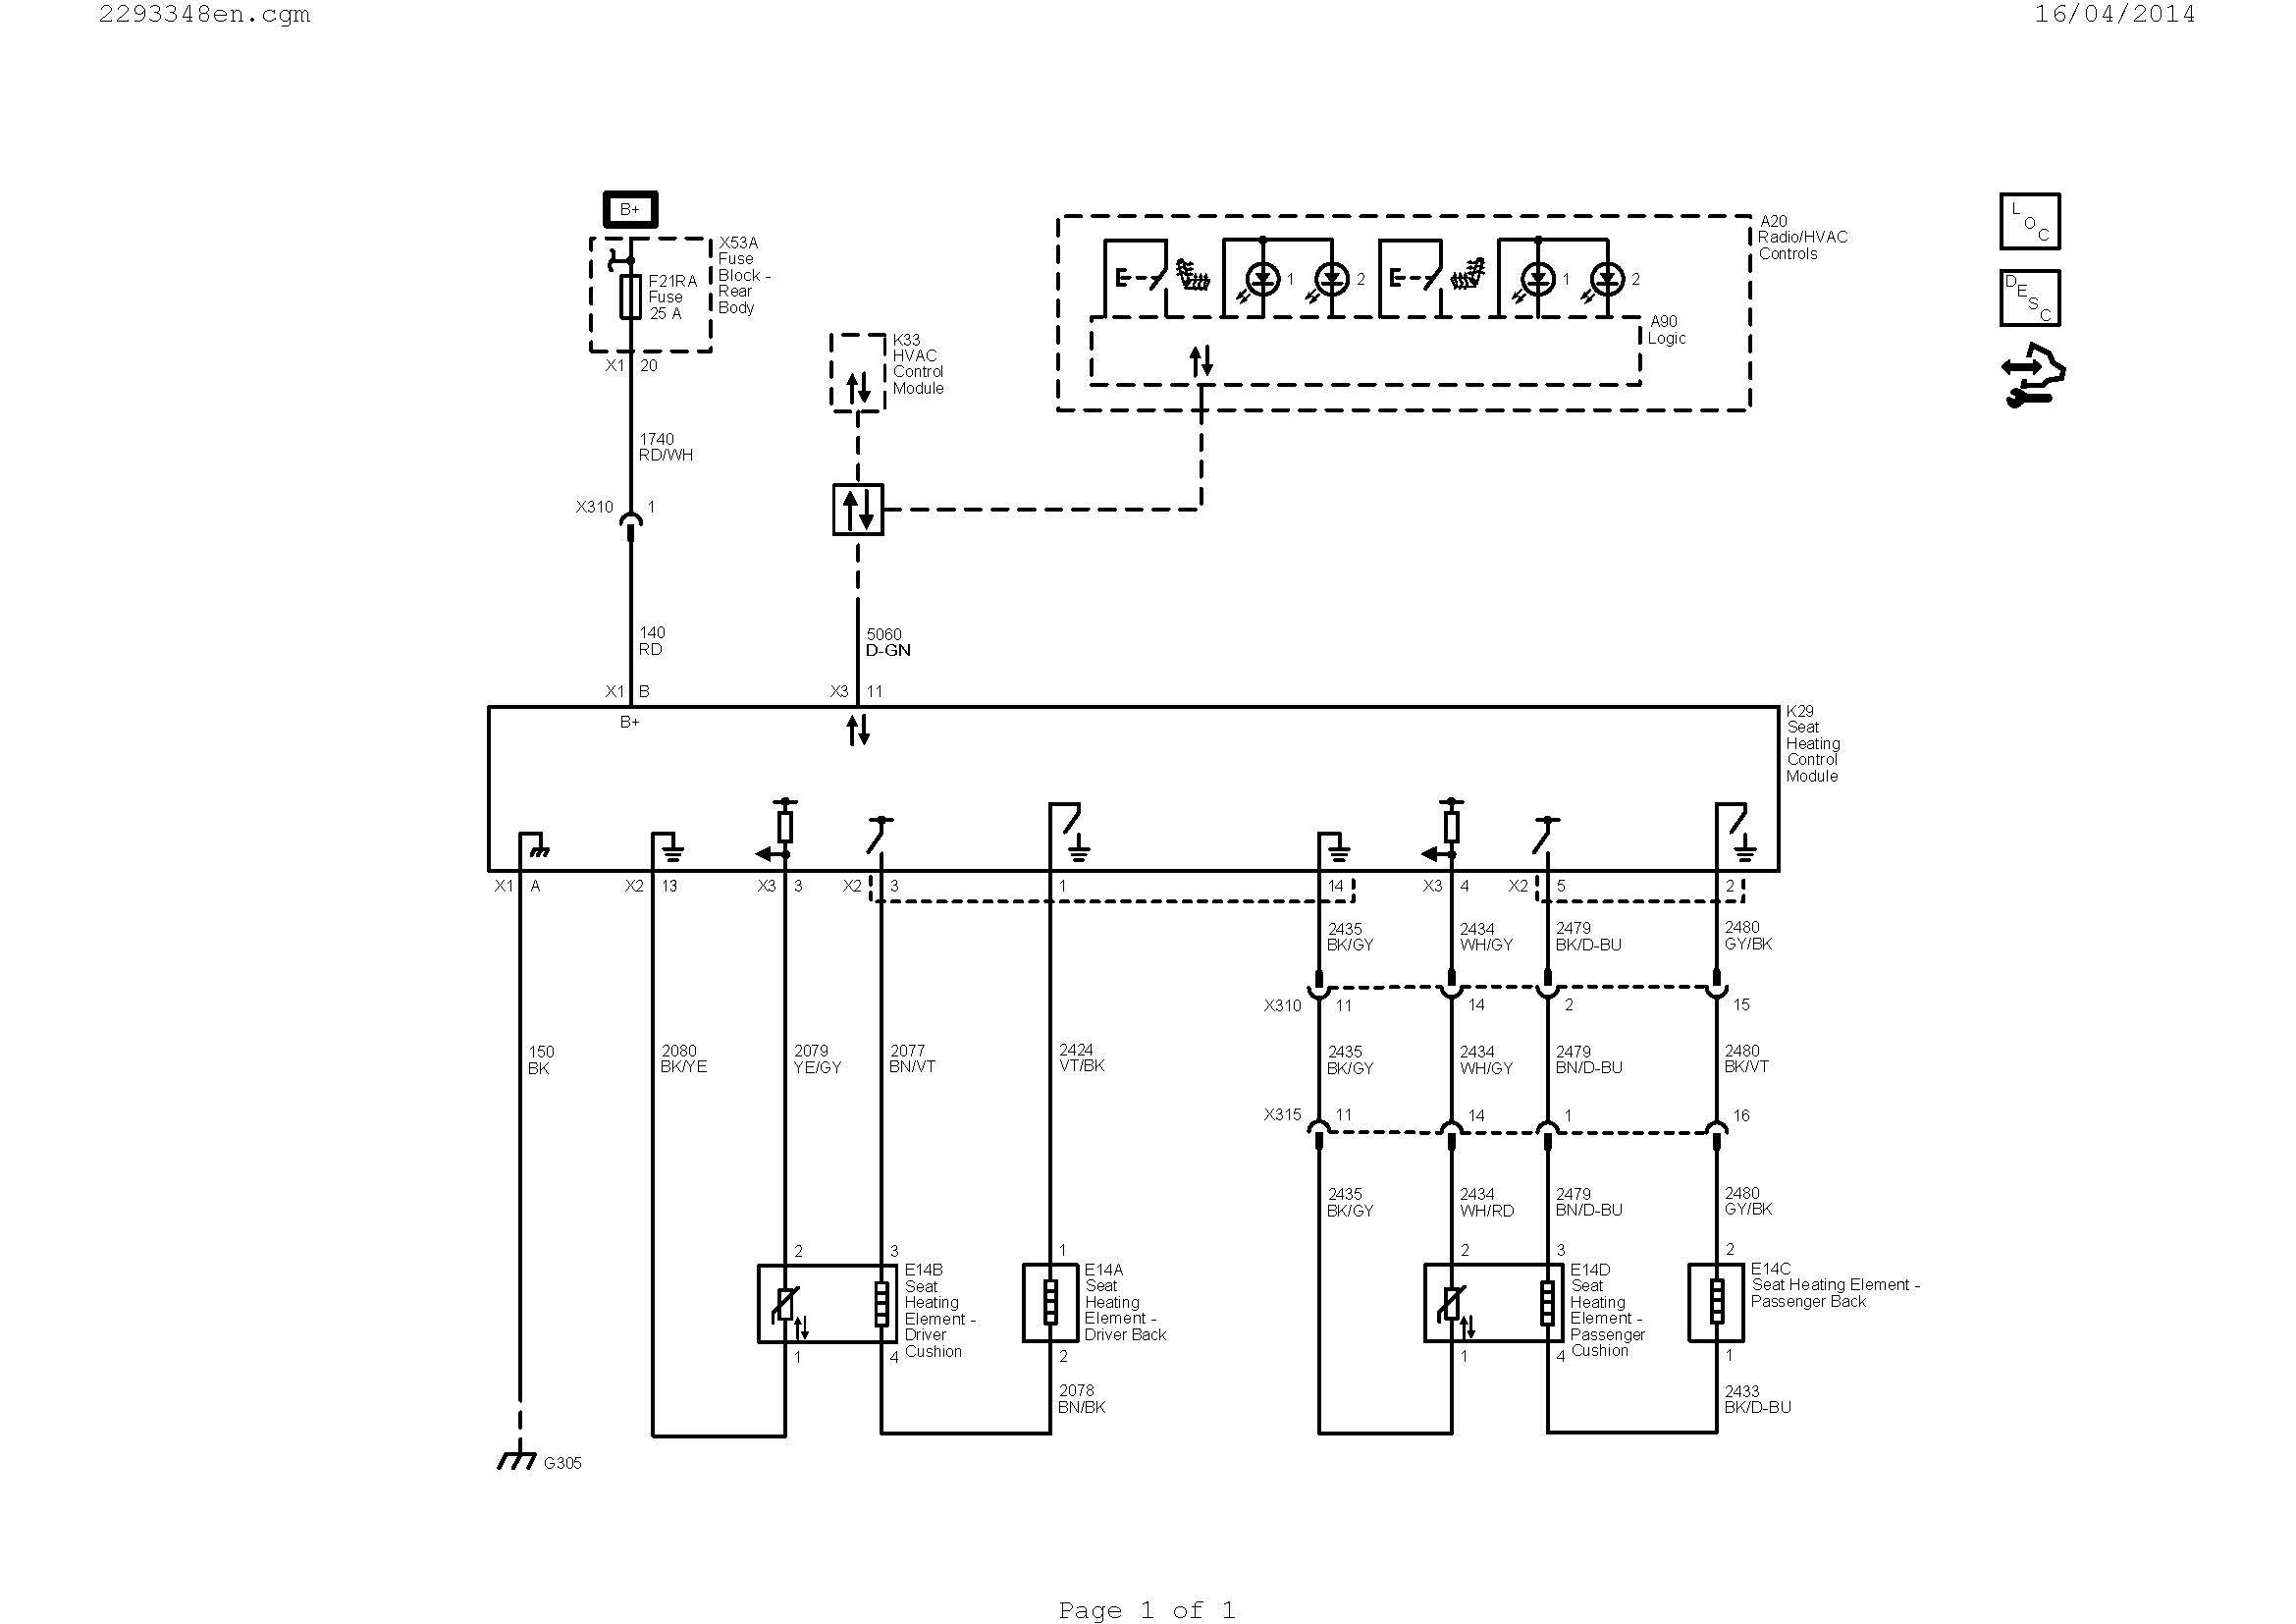 light switch wiring diagram Download-Wiring Diagram Dual Light Switch 2019 2 Lights 2 Switches Diagram Unique Wiring A Light Fitting Diagram 0d 12-j